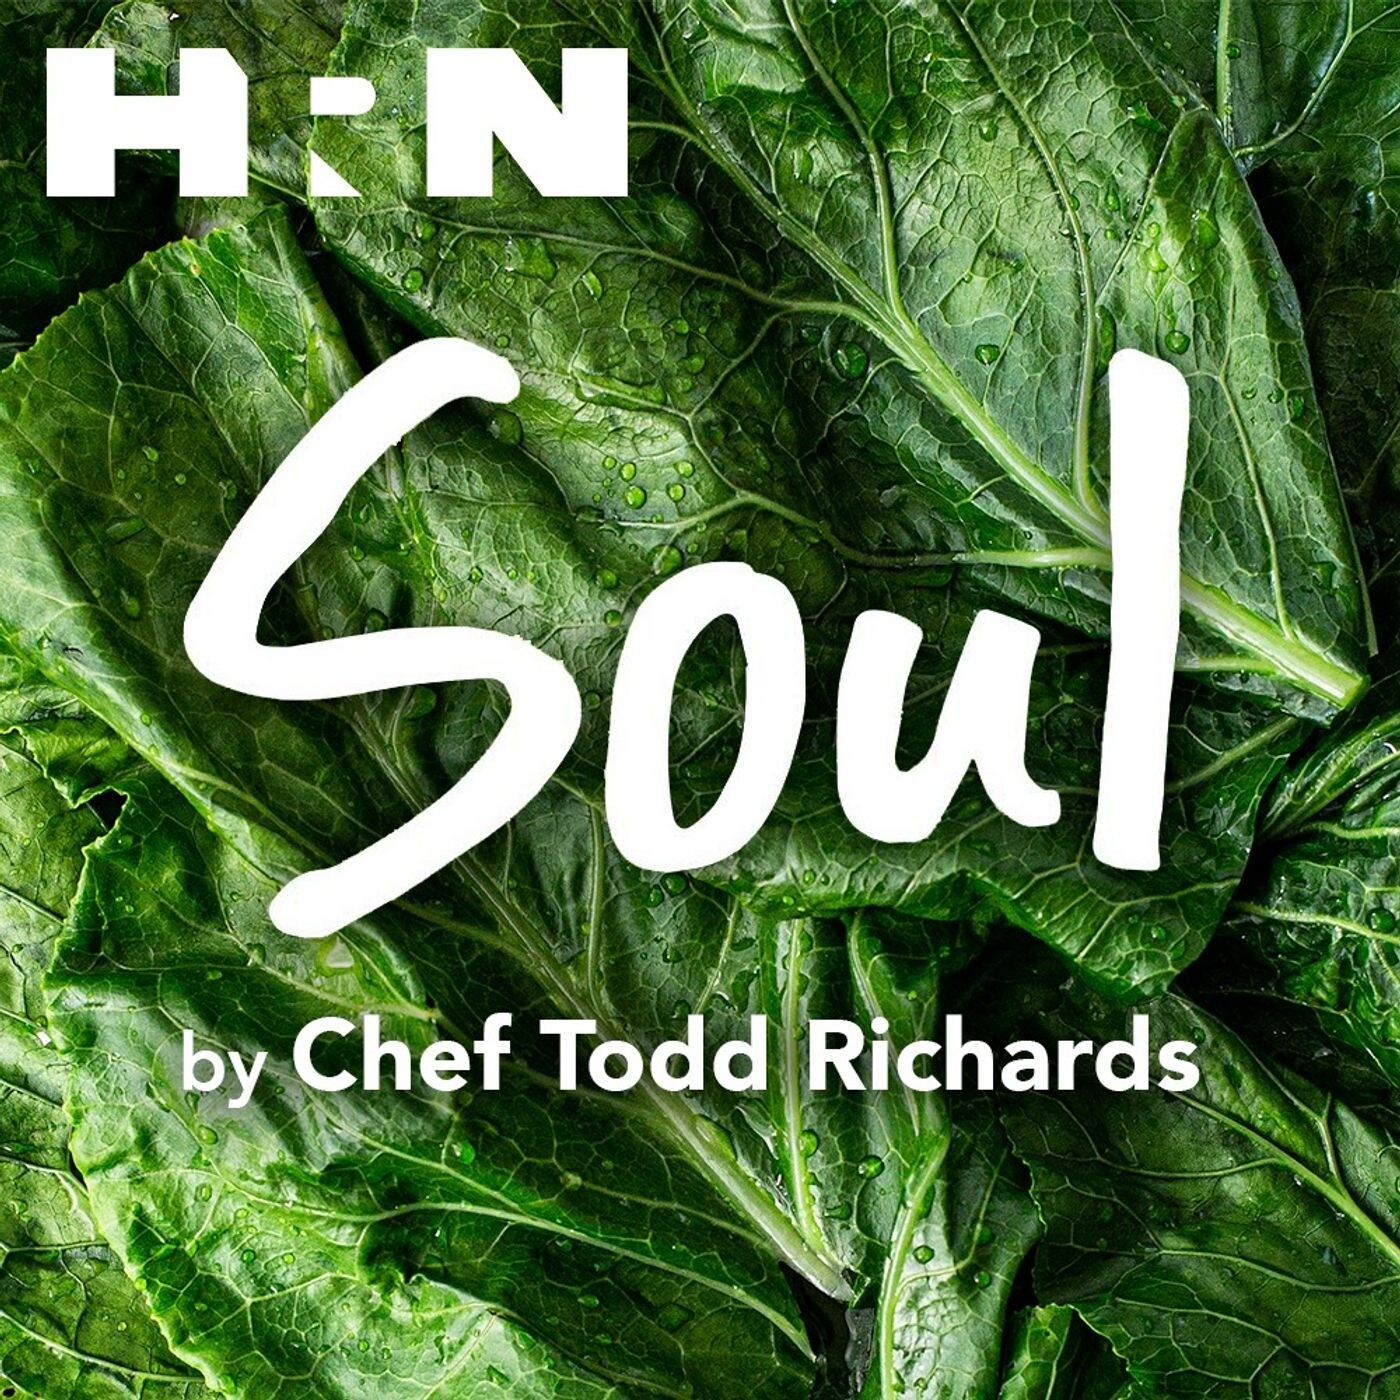 Coming Soon, From HRN: Soul by Chef Todd Richards